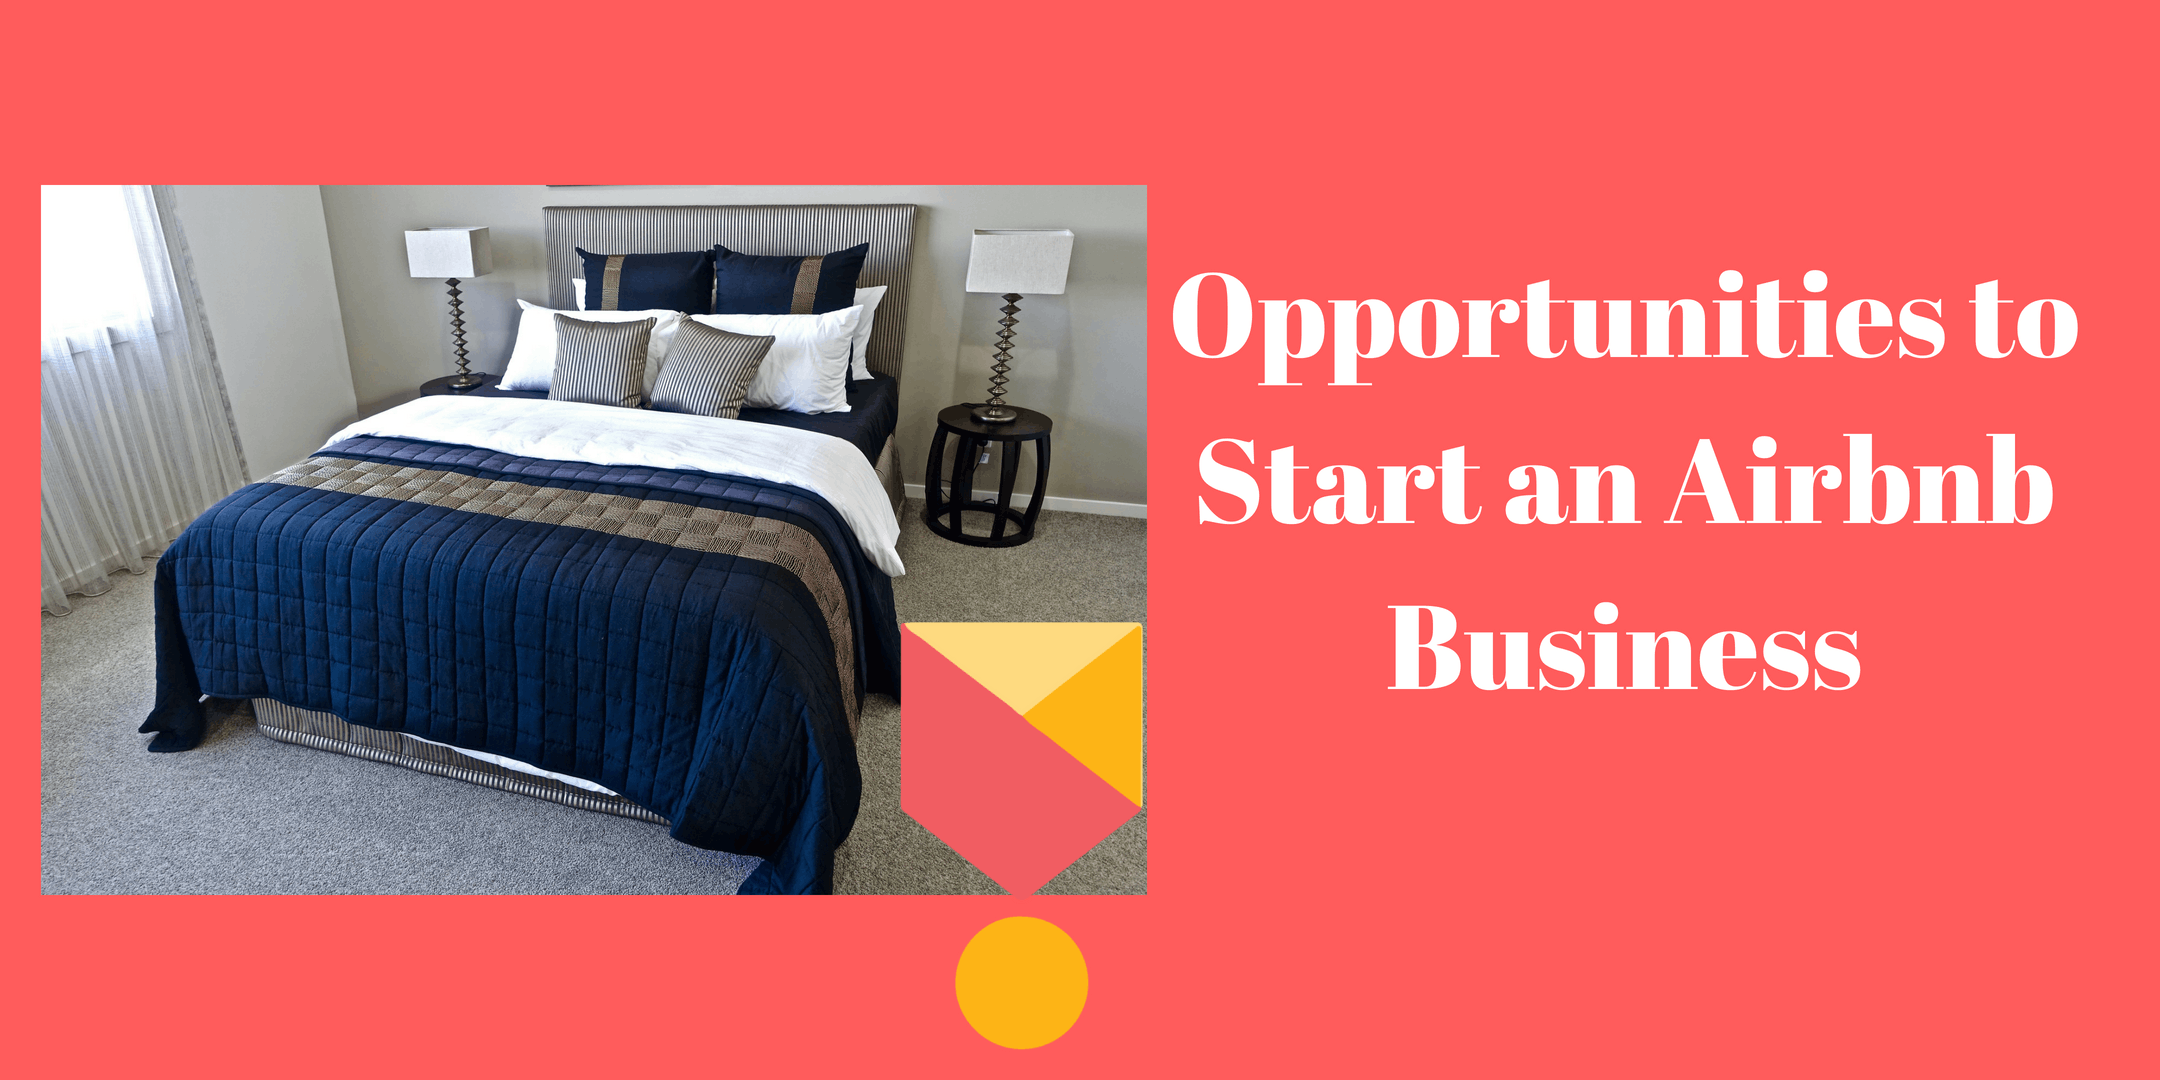 Opportunities to Start an Airbnb Business at 1744 Dian St